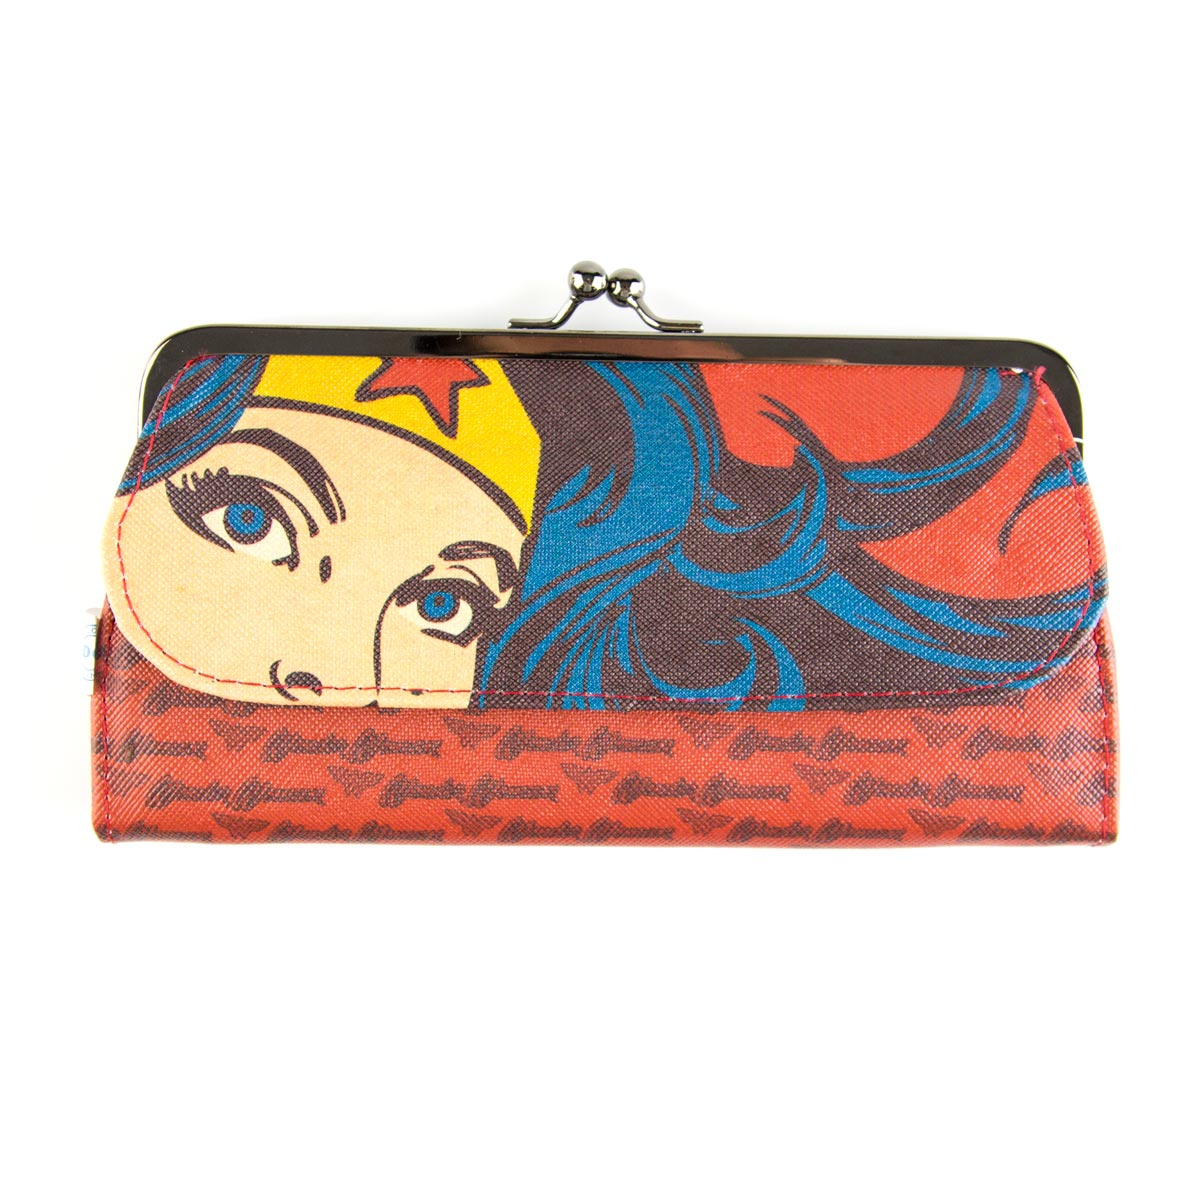 Carteira Feminina Wonder Woman Power Vermelha